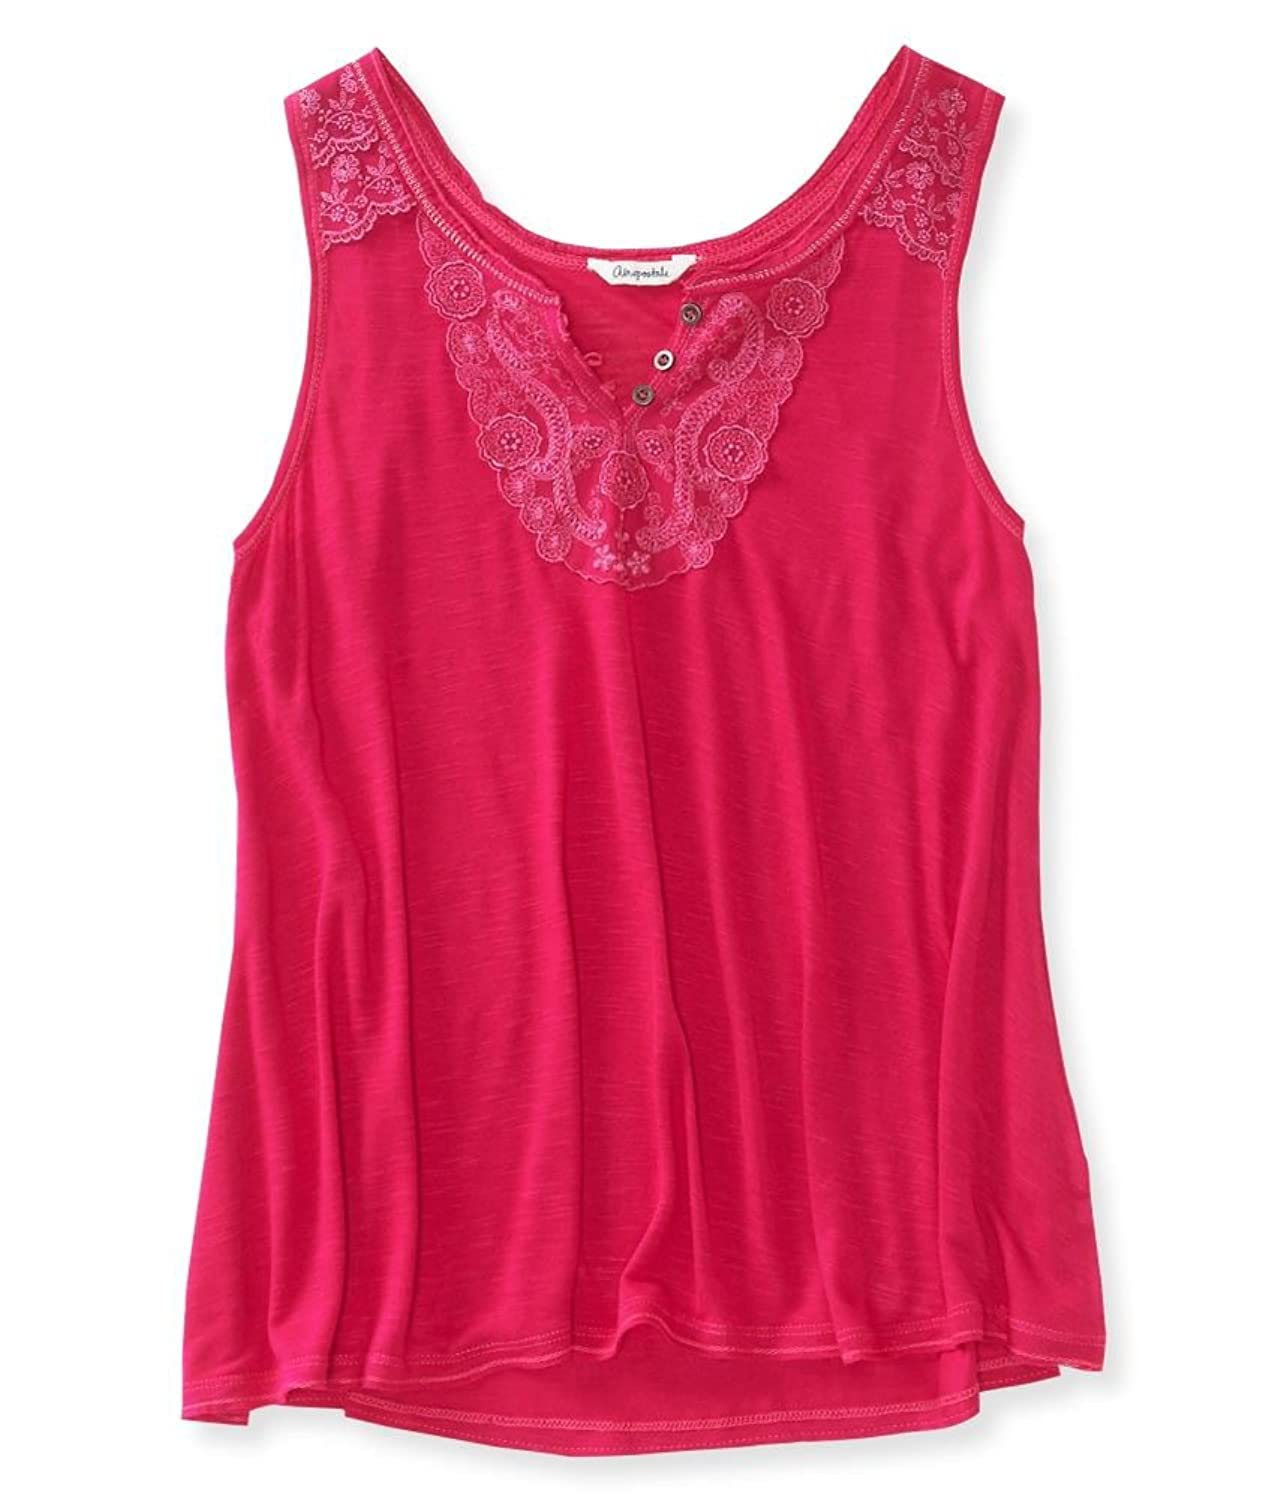 Aeropostale Womens Sheer Lacey Slub Tank Top